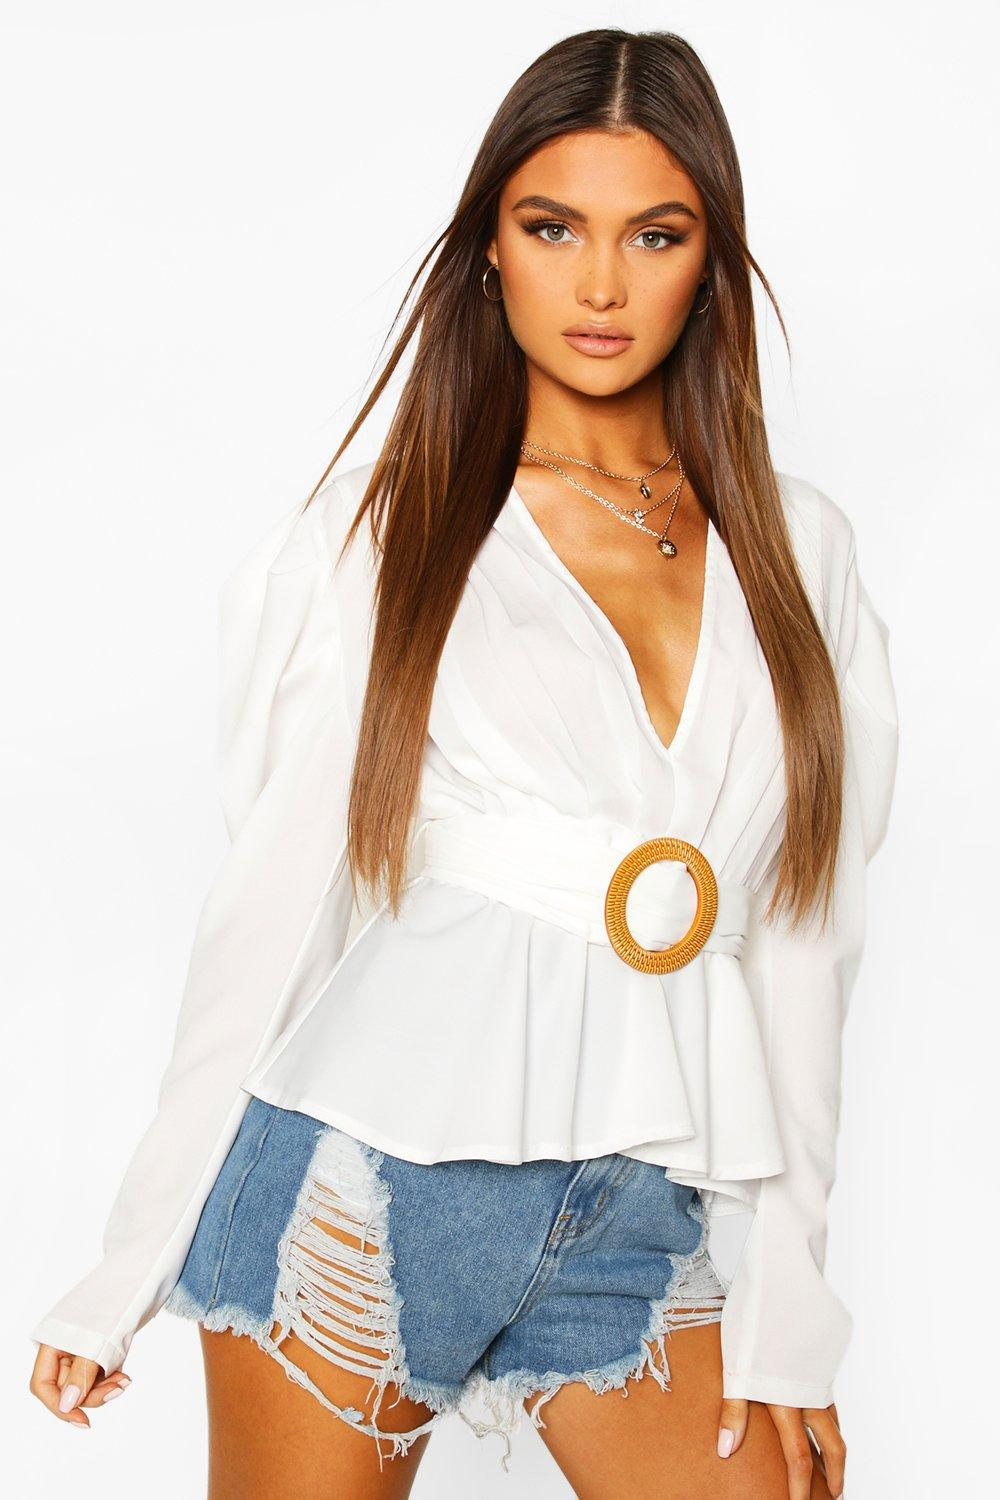 Vintage Tops & Retro Shirts, Halter Tops, Blouses Womens Woven Pleated Belted Puff Sleeve Blouse - white - 10 $15.00 AT vintagedancer.com